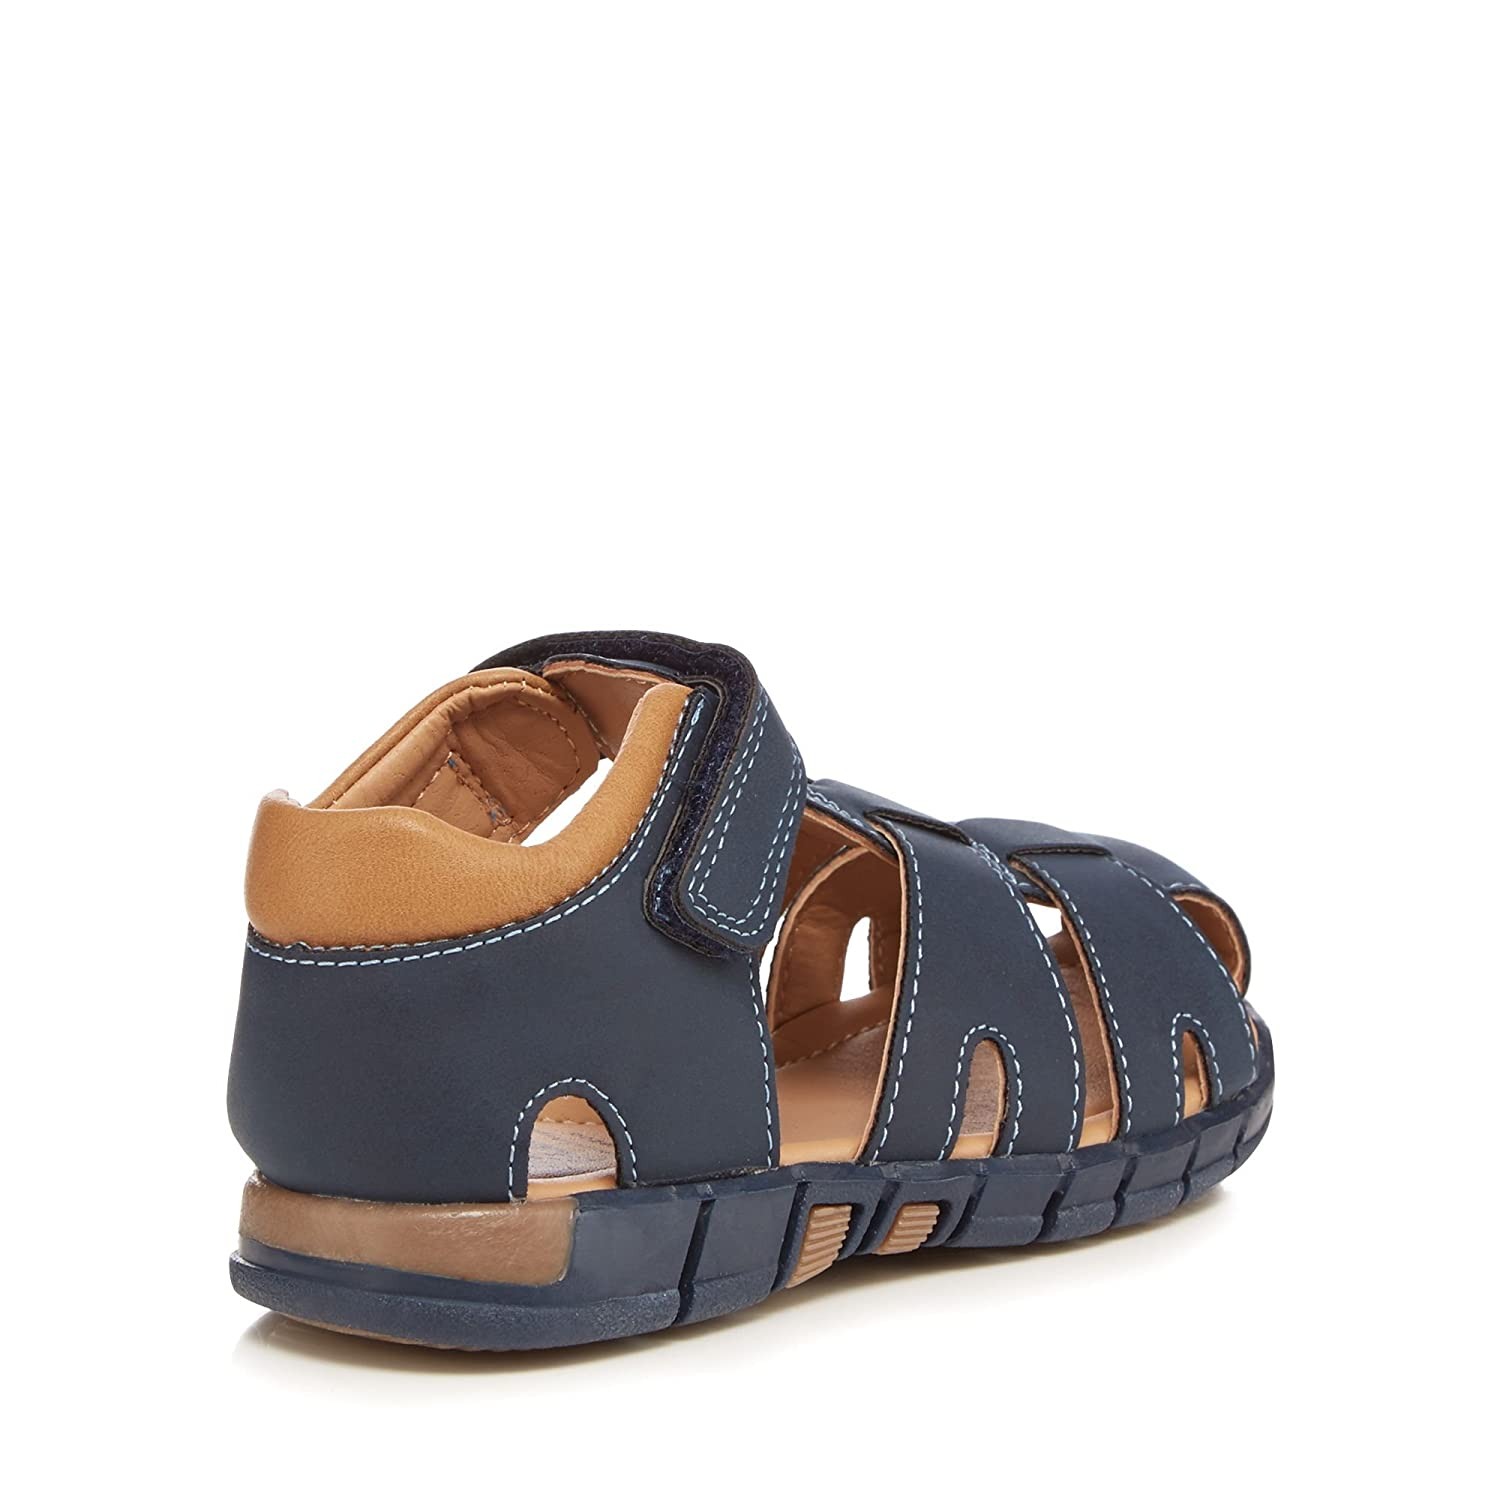 3b4994da493 bluezoo Kids Boys  Navy Fisherman Sandals 6 Younger  Amazon.co.uk  Shoes    Bags